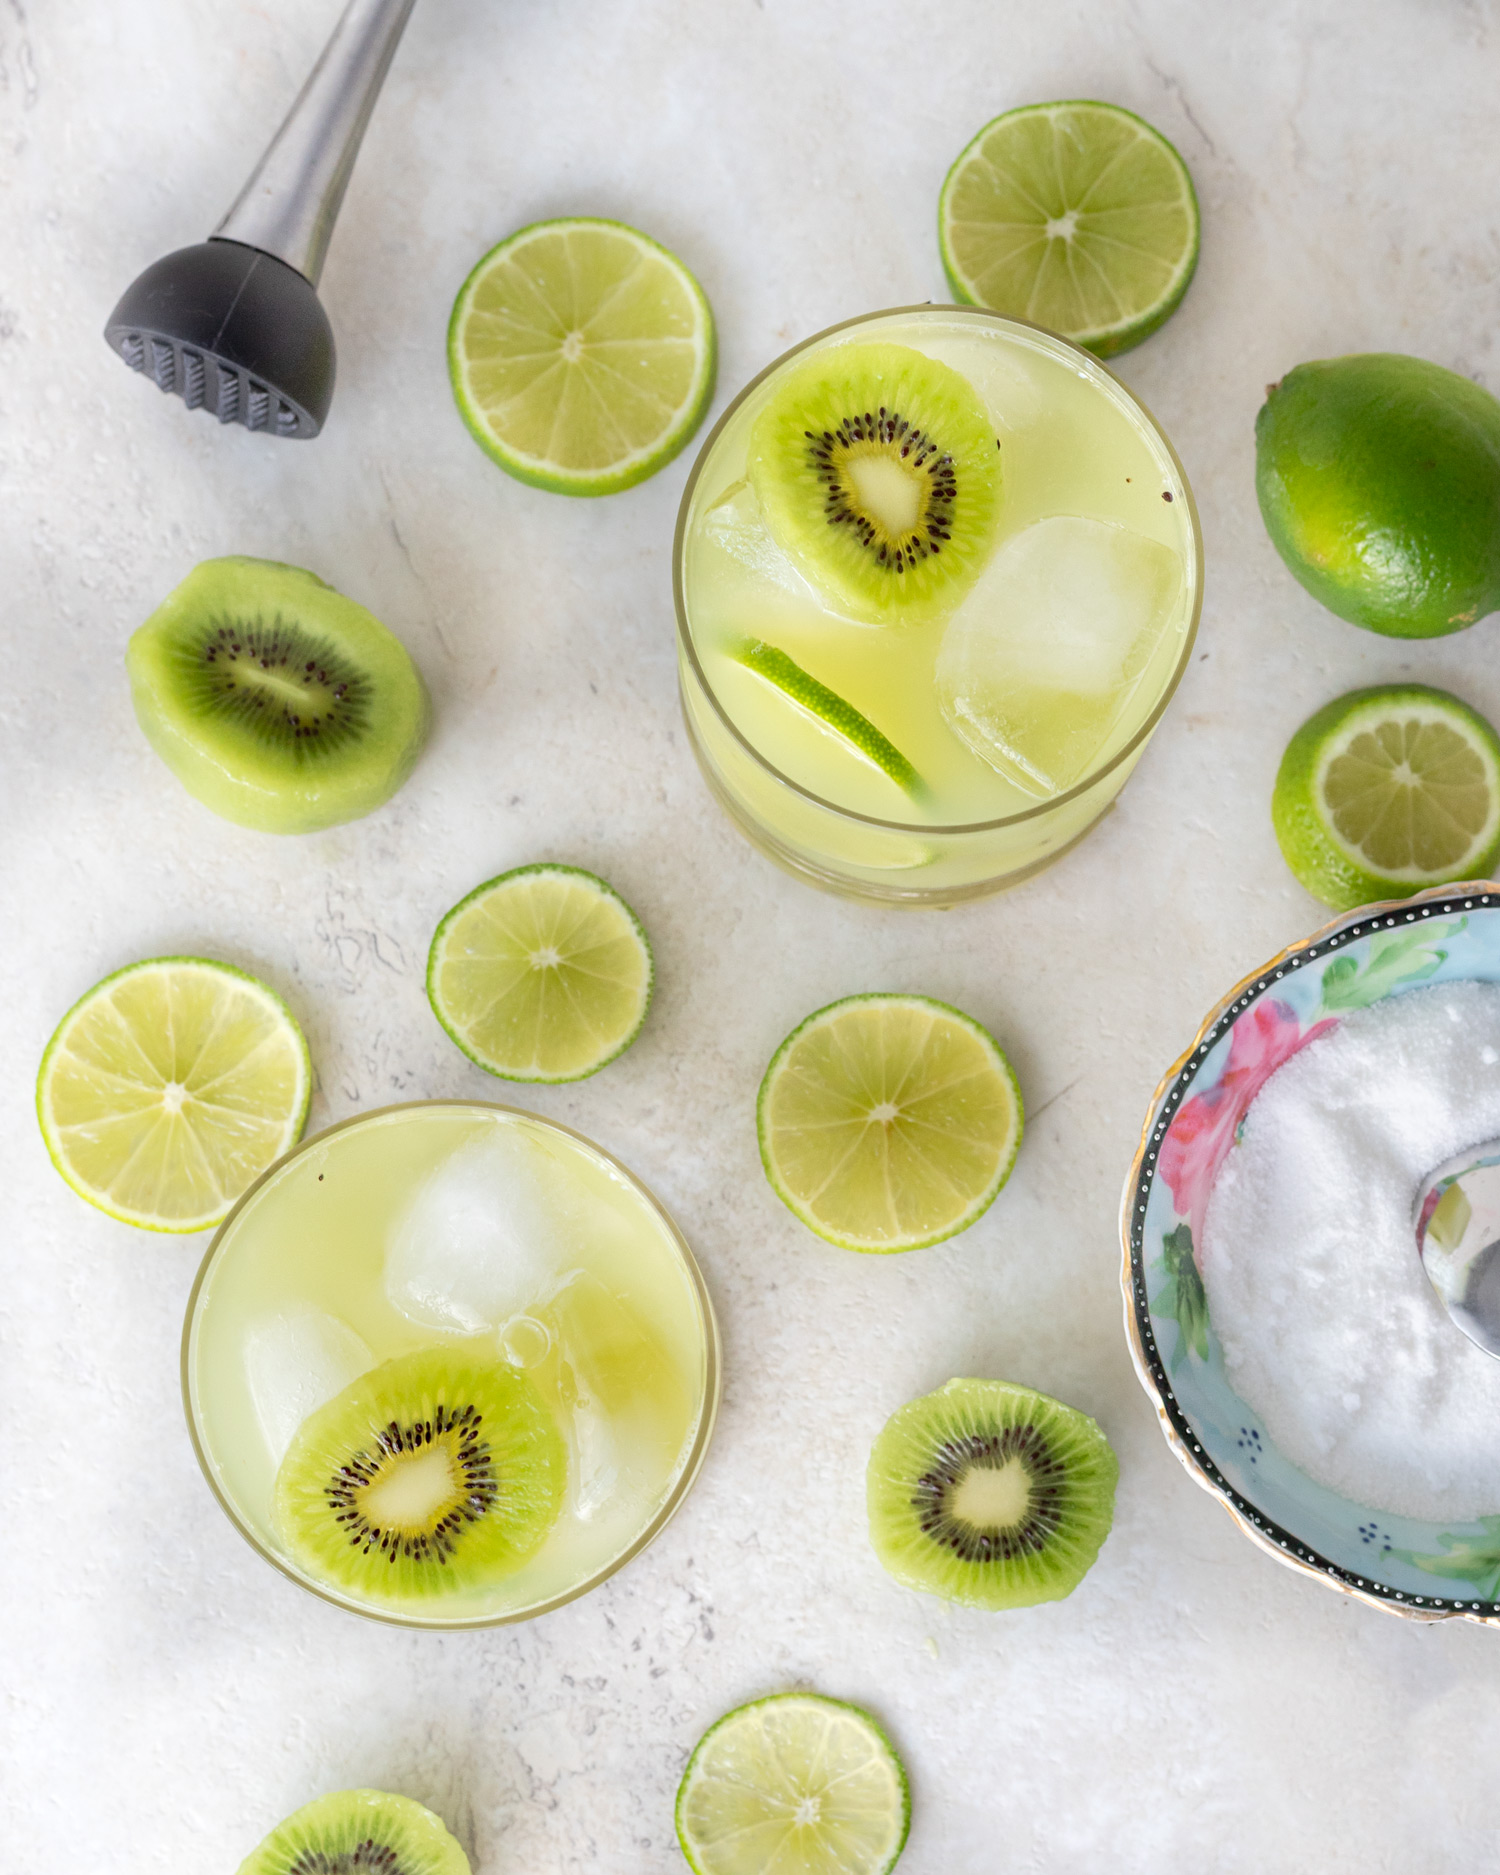 Kiwi-Caipirinha is a classic cachaça cocktail with a fruity spin on it. This tart and sweet cocktail is perfect for late summer sipping and is an easy cocktail recipe that anyone can make. #ElleTalk #cachaça #cocktailrecipe #drinkrecipe #summerrecipe #latesummerrecipe